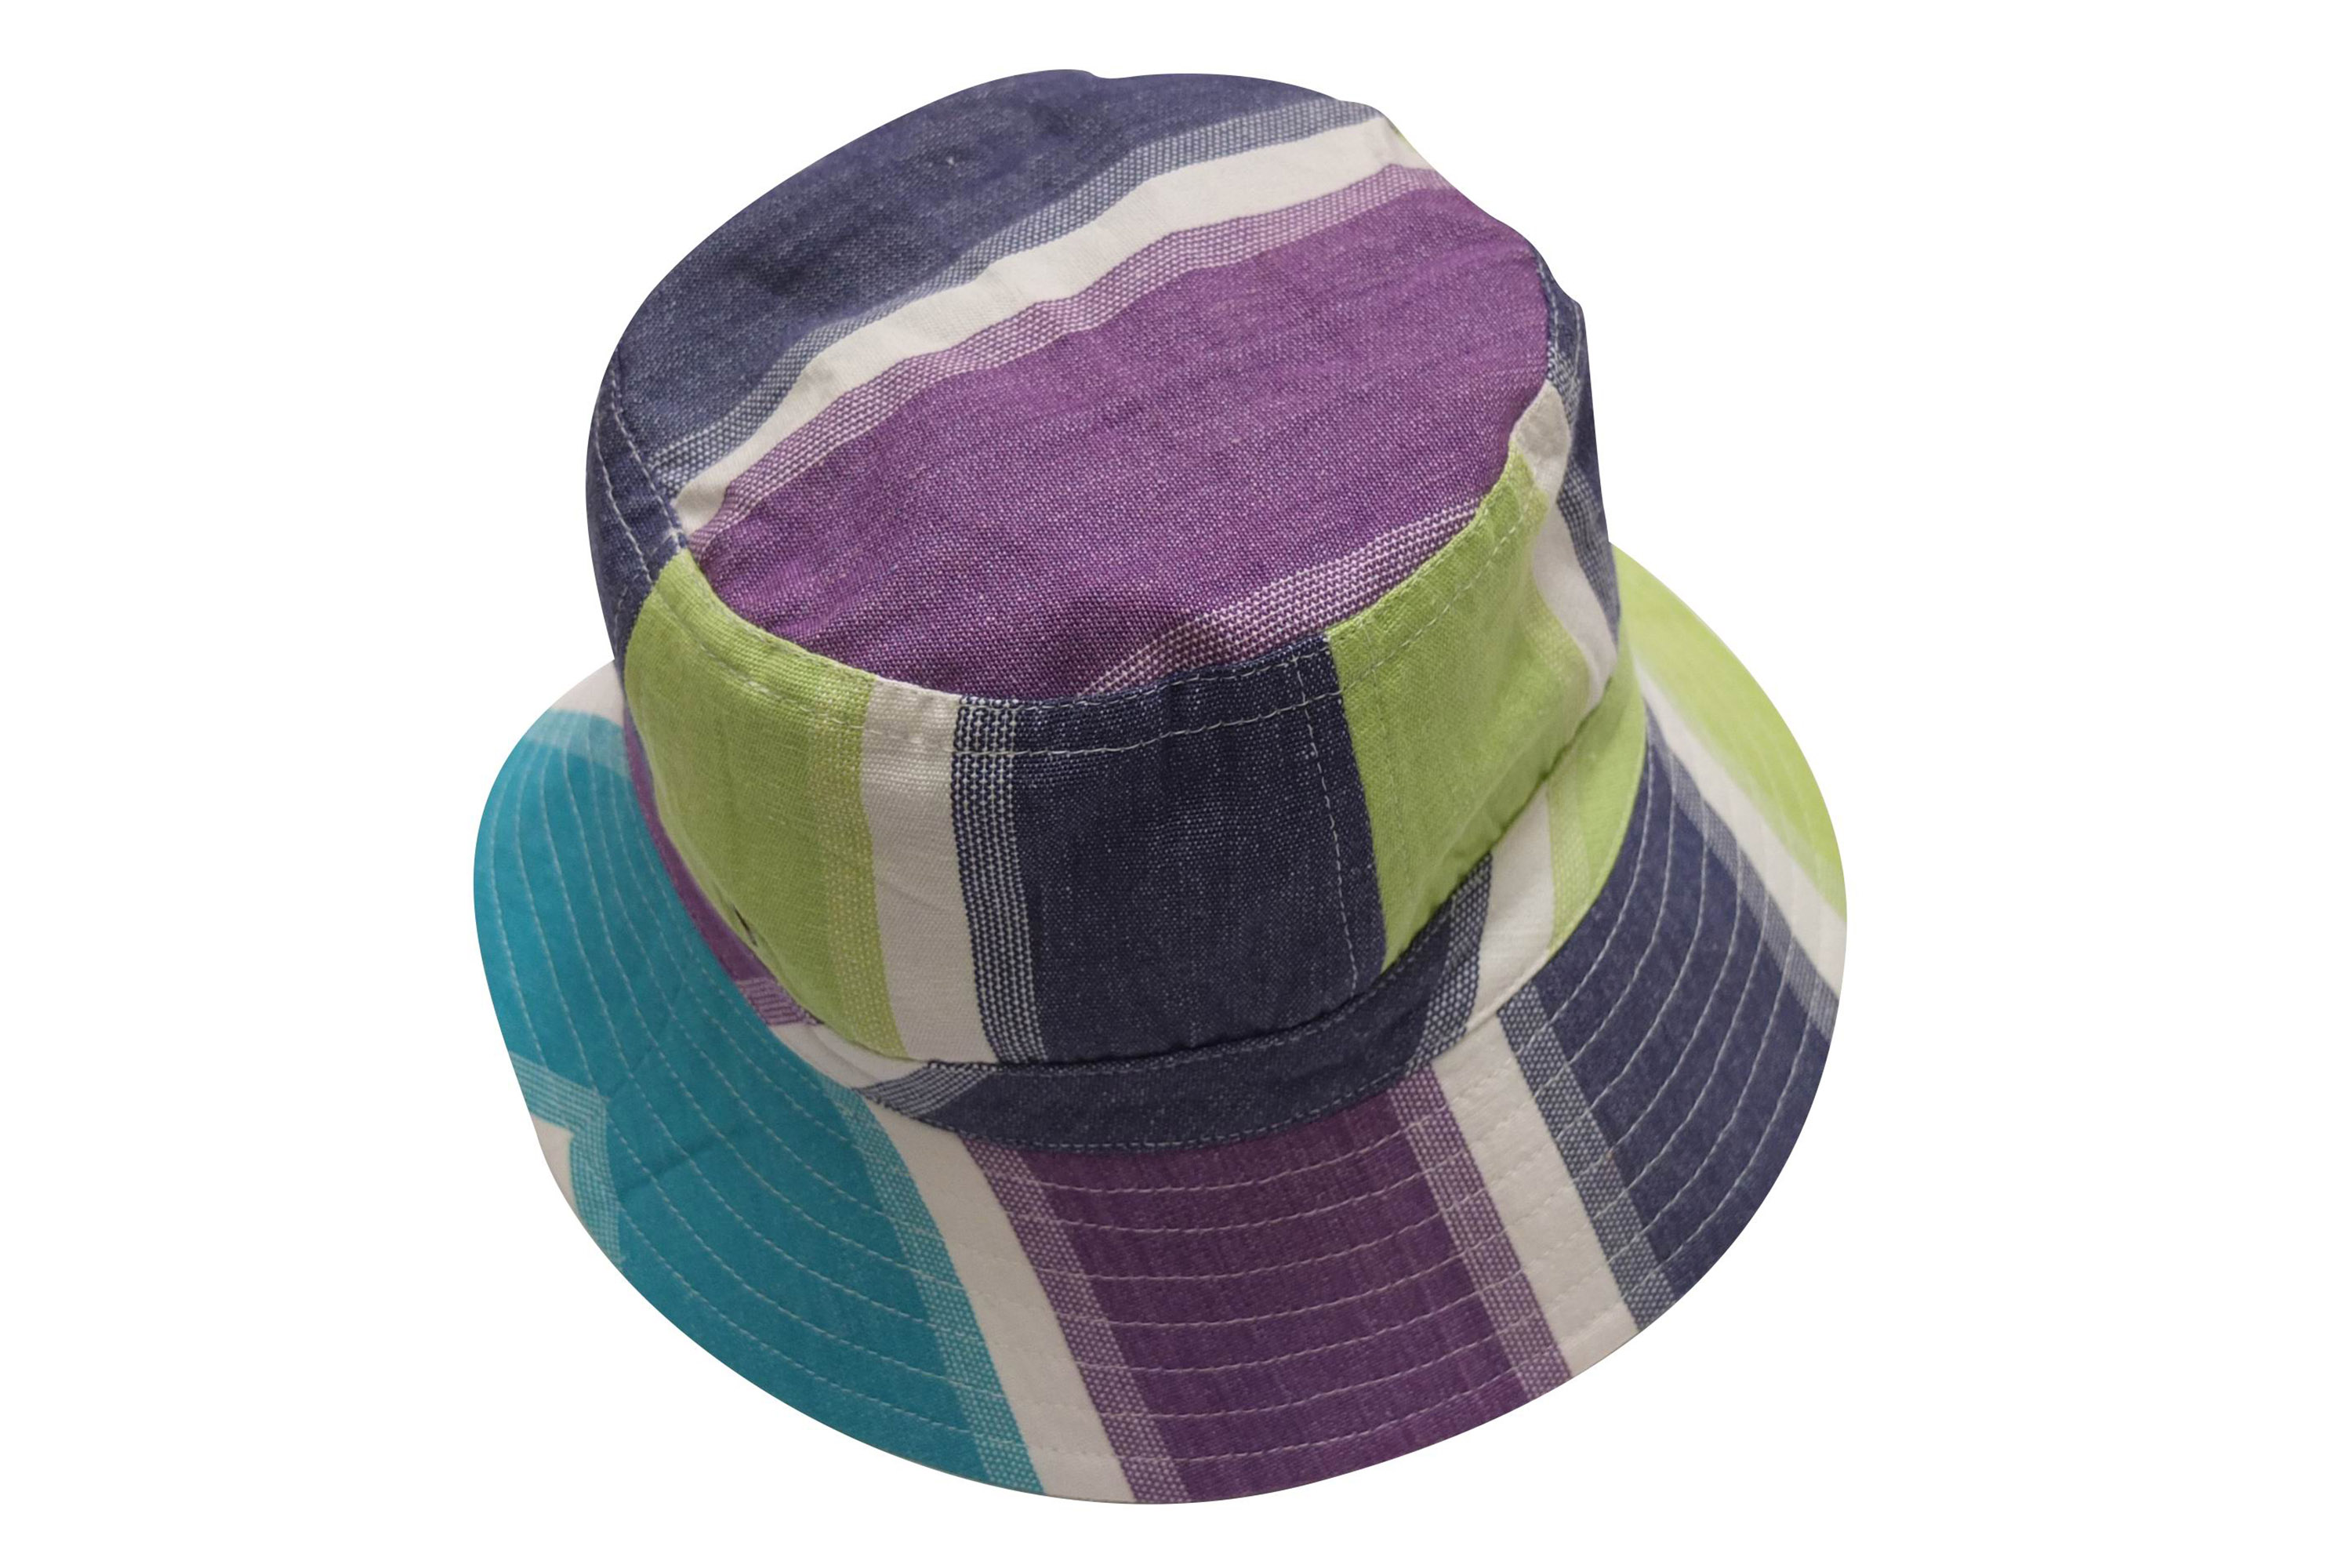 Fishing Striped Sun Hats | Bucket Hat Lime Green, Turquoise, White Stripes